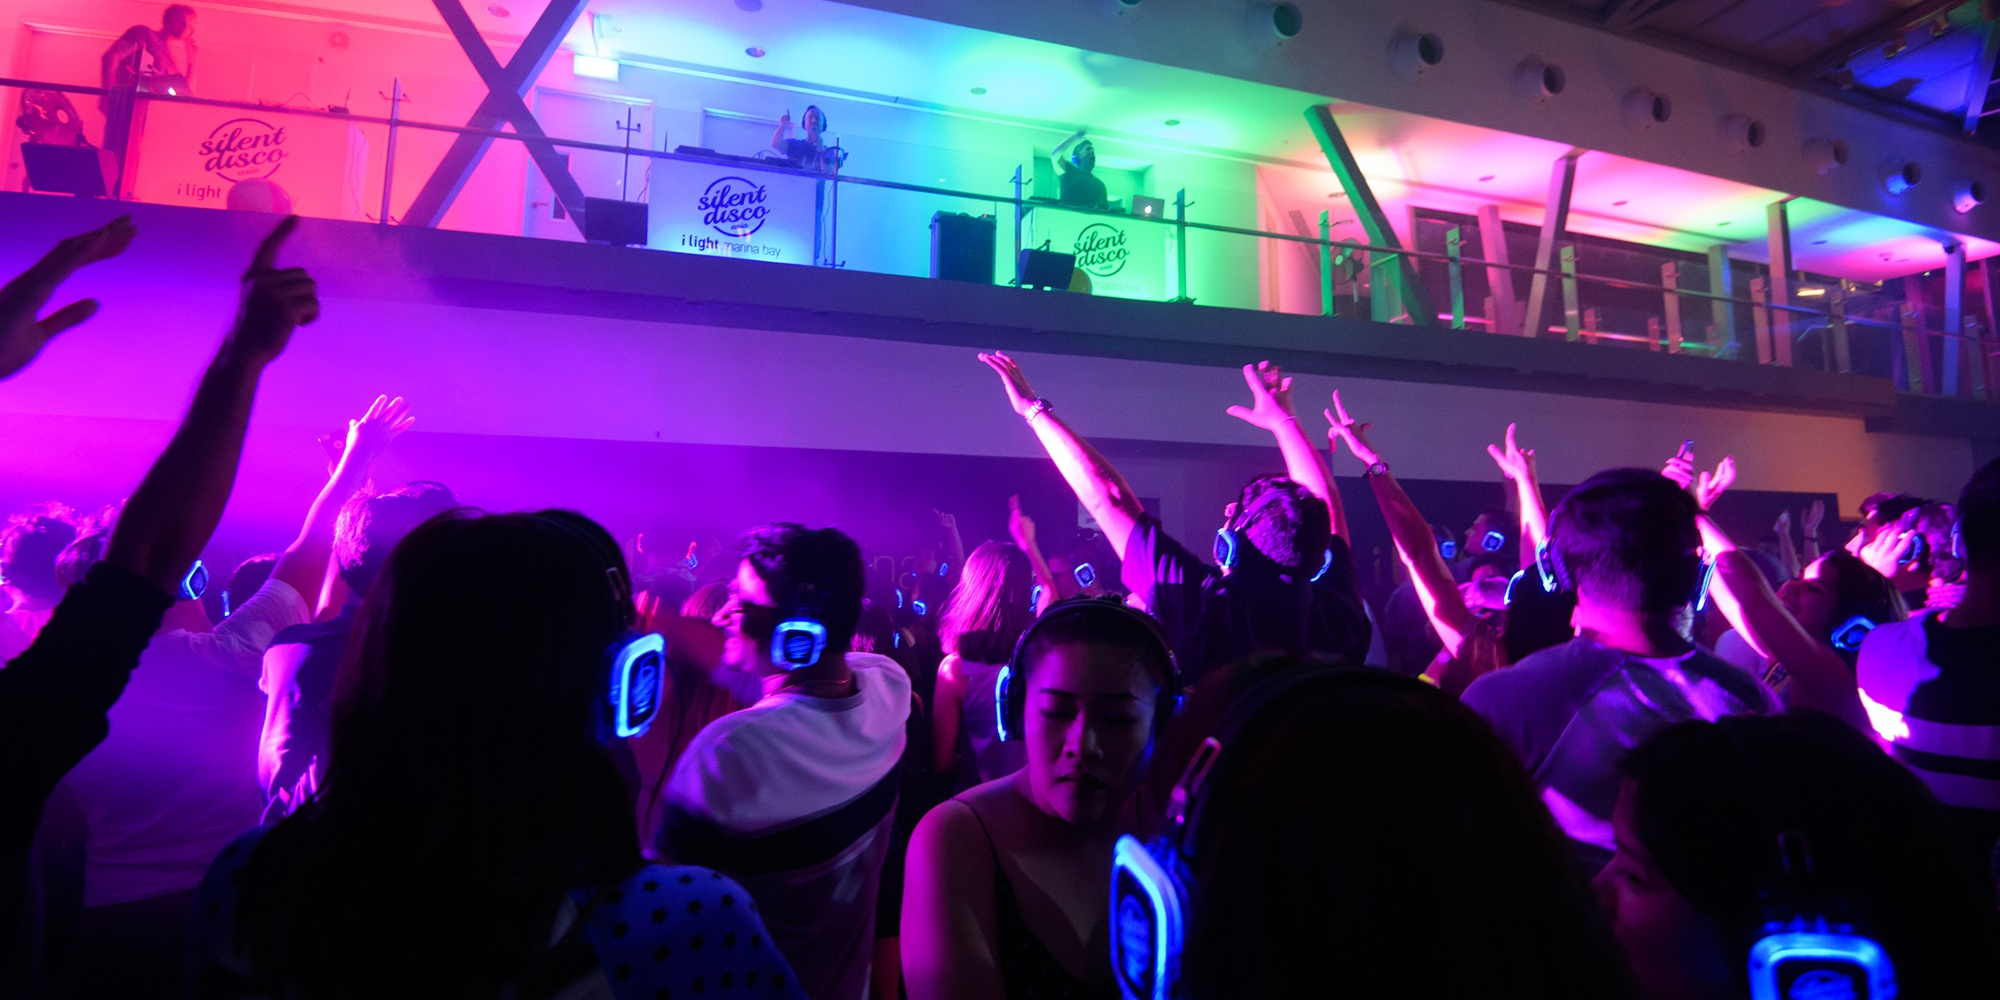 Silent Disco Asia returns with a New Year's Eve party at ArtScience Museum